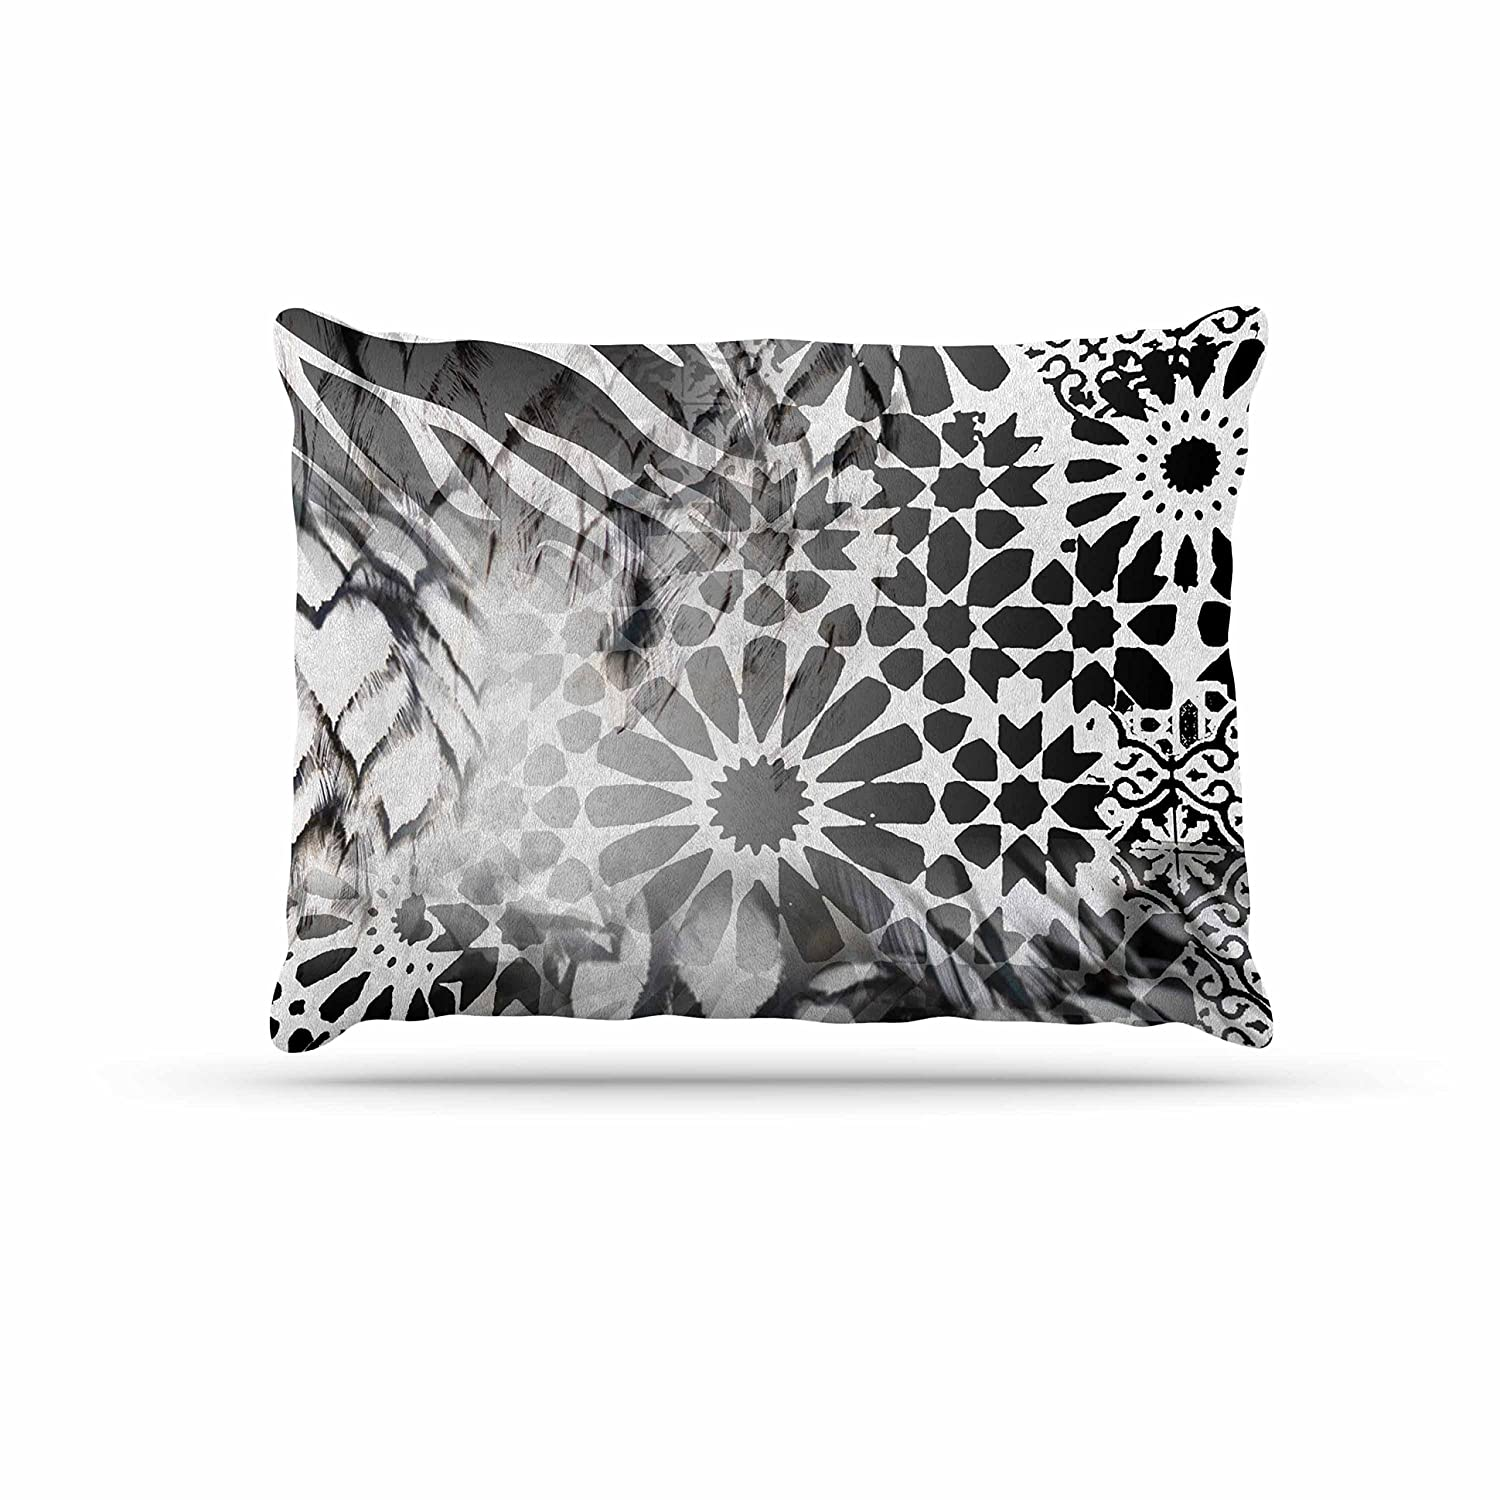 KESS InHouse Victoria Krupp Out of Mgoldcco Black Abstract Dog Bed, 50  x 40